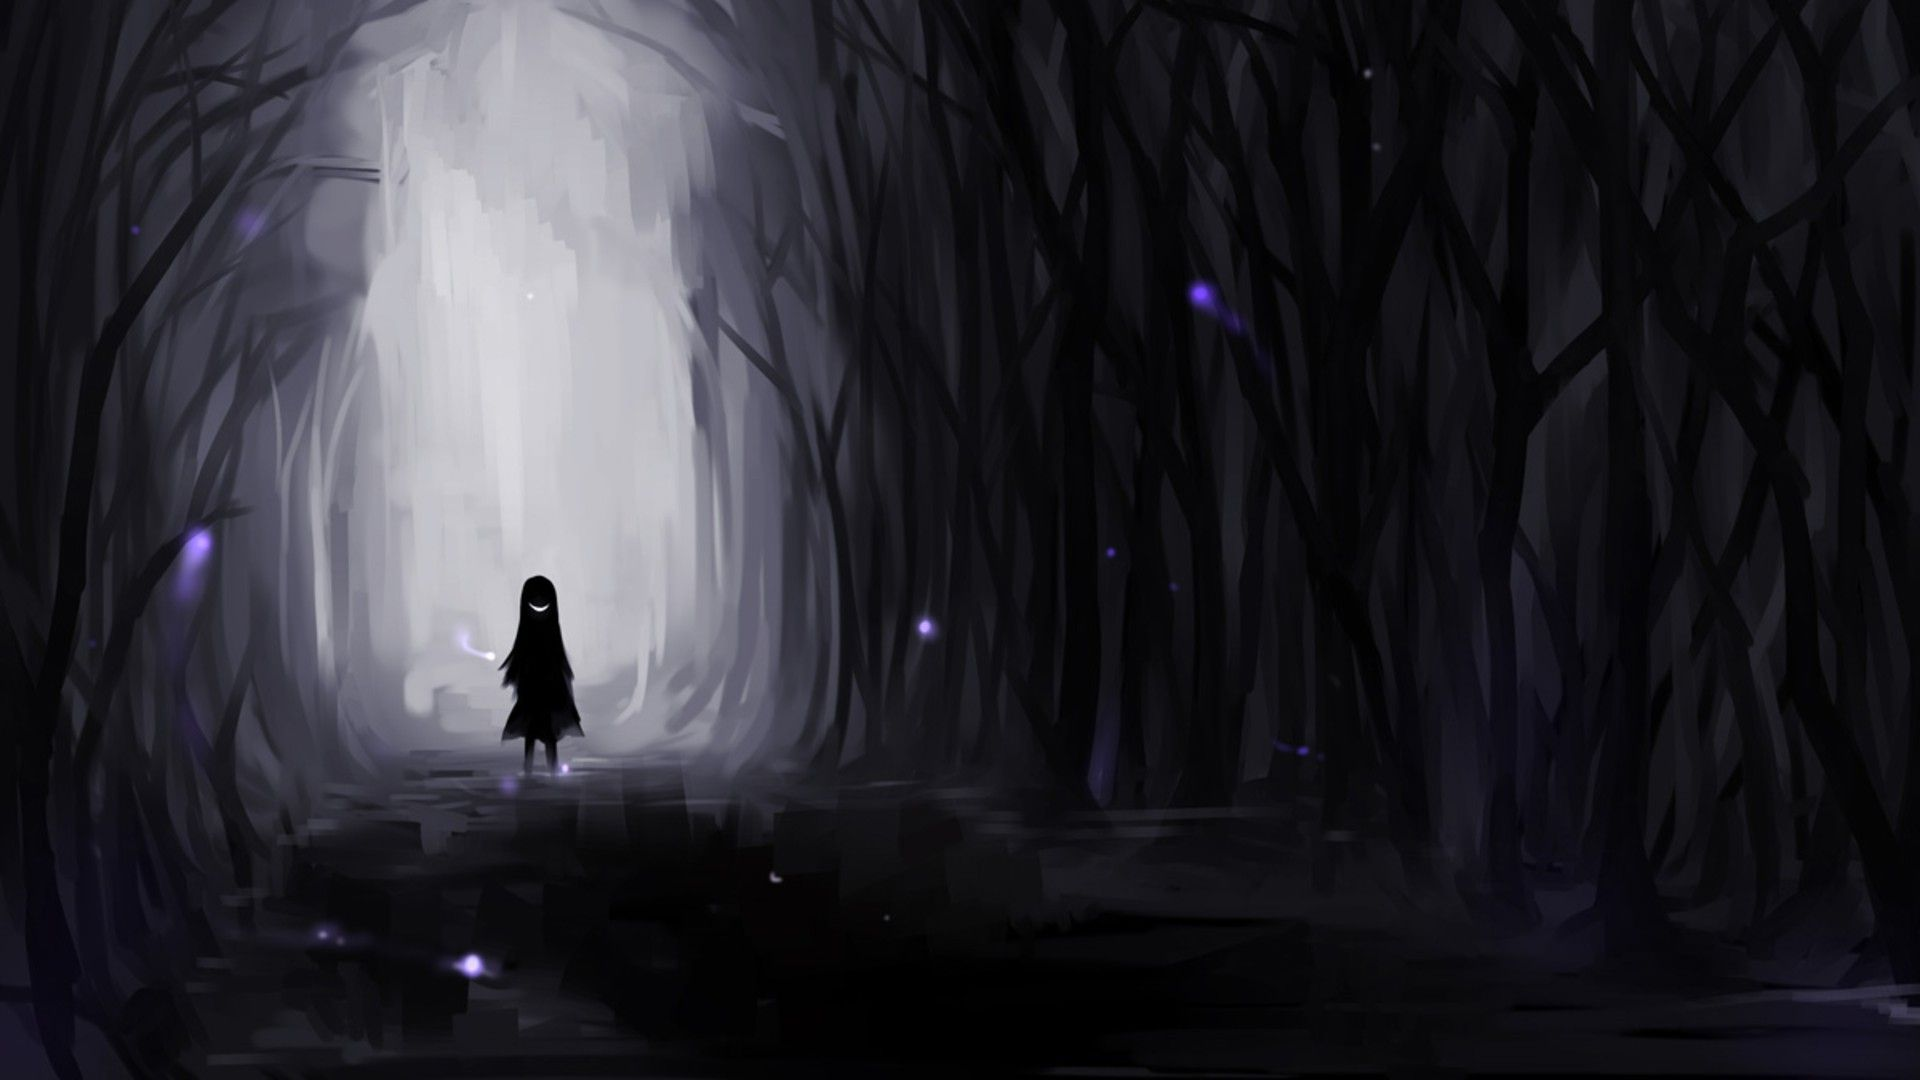 Alone Anime Girls Wallpapers - Wallpaper Cave